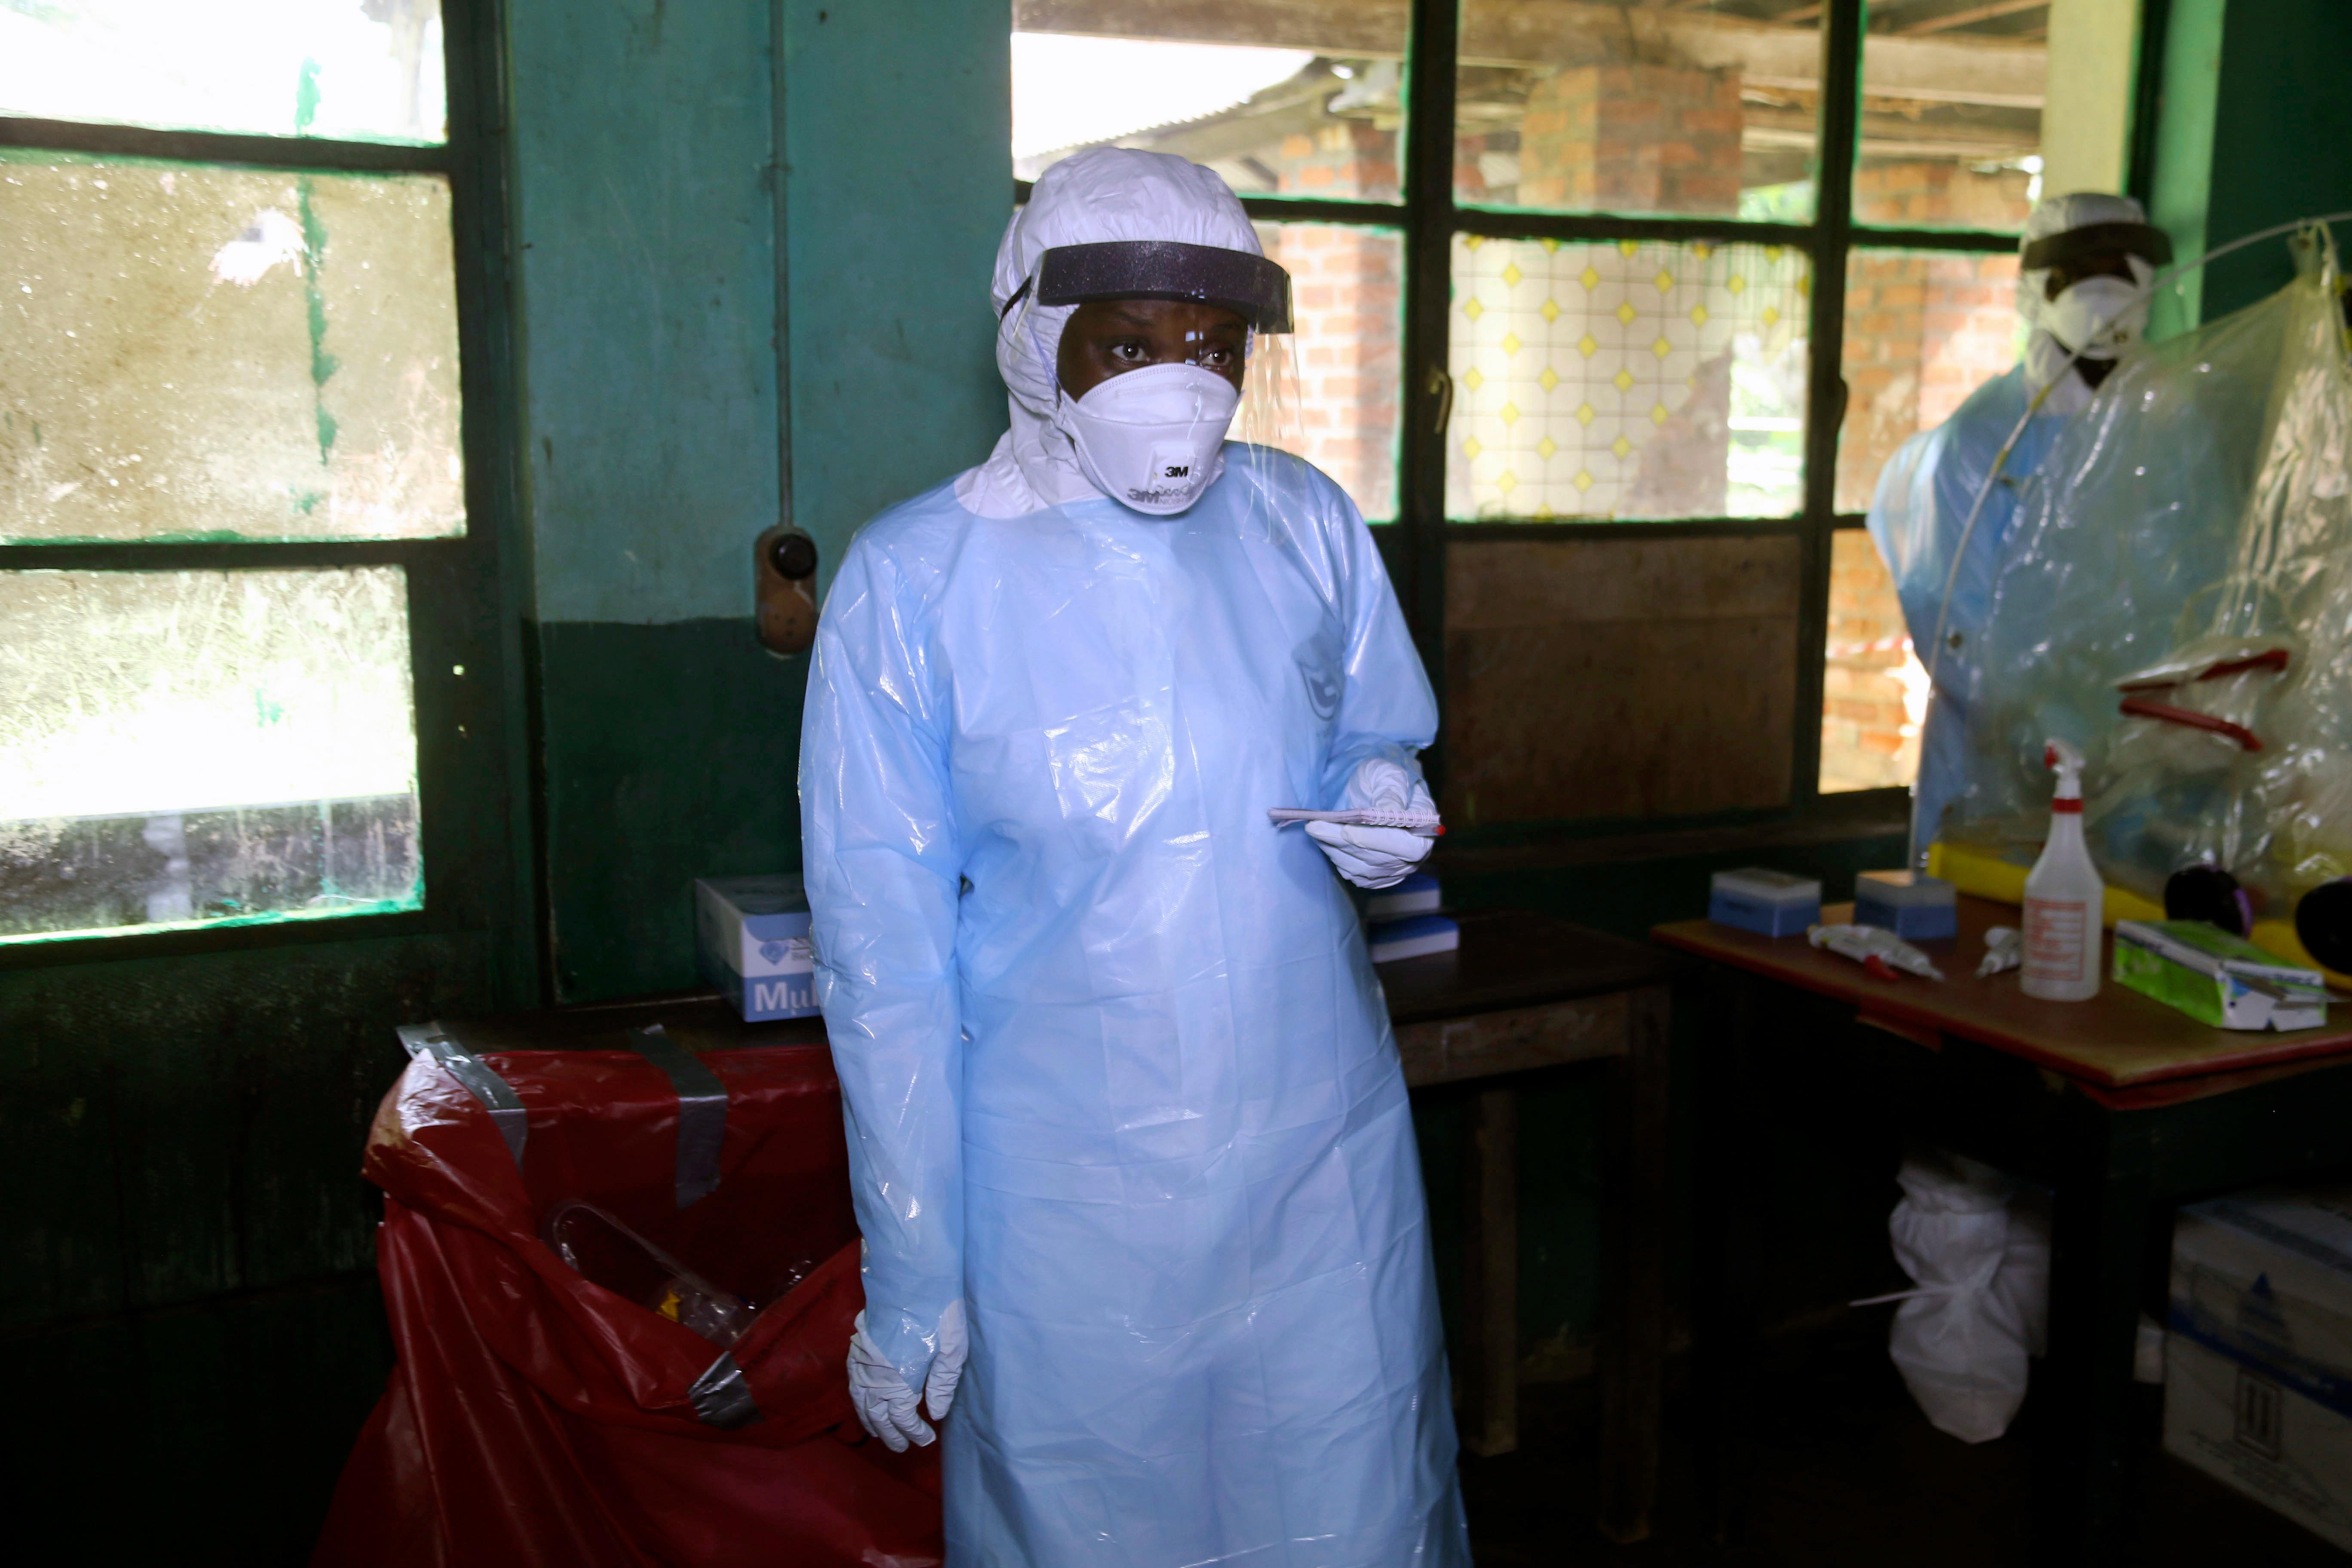 In this photo taken on Sunday, May 13, 2018, a health care worker wears virus protective gear at a treatment center in Bikoro Democratic Republic of Congo. Congo's latest Ebola outbreak has spread to a city of more than 1 million people, a worrying shift as the deadly virus risks traveling more easily in densely populated areas. Two suspected cases of hemorrhagic fever were reported in the Wangata health zones that include Mbandaka, the capital of northwestern Equateur province. The city is about 150 kilometers (93 miles) from Bikoro, the rural area where the outbreak was announced last week, said Congo's Health Minister Oly Ilunga. (AP Photo/John Bompengo)